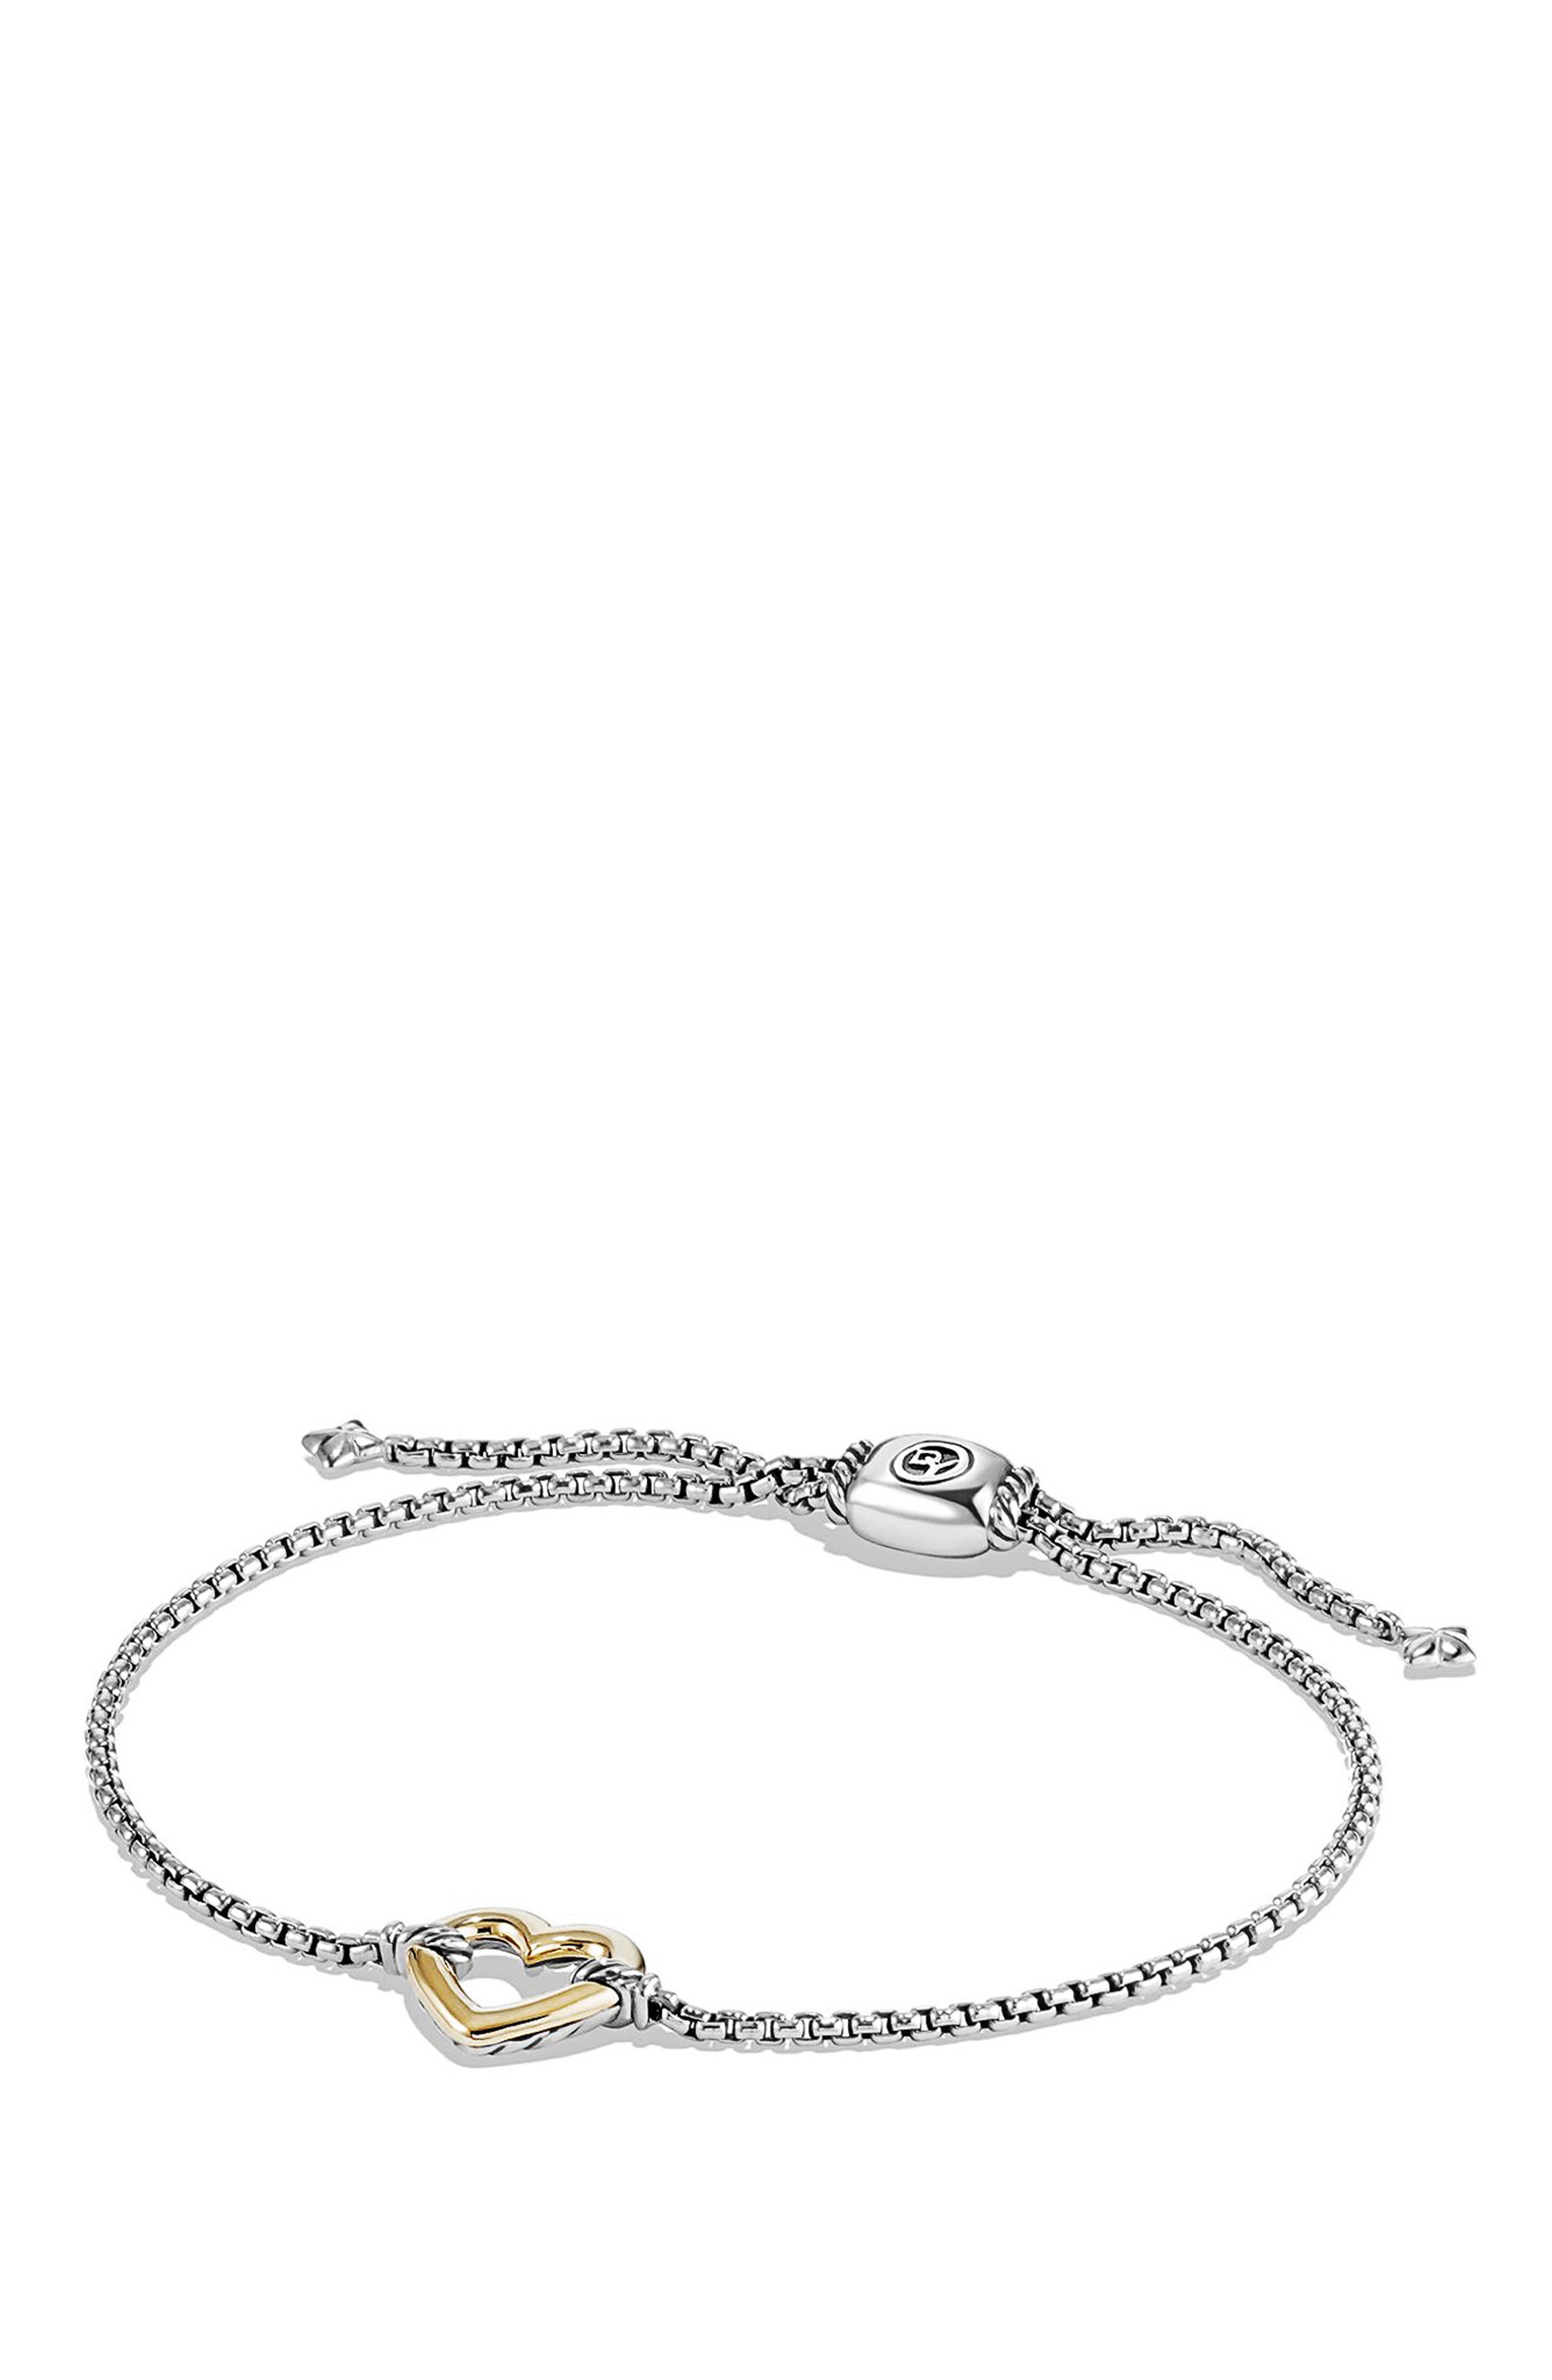 David Yurman 'Cable Collectibles' Heart Station Bracelet with 18K Gold